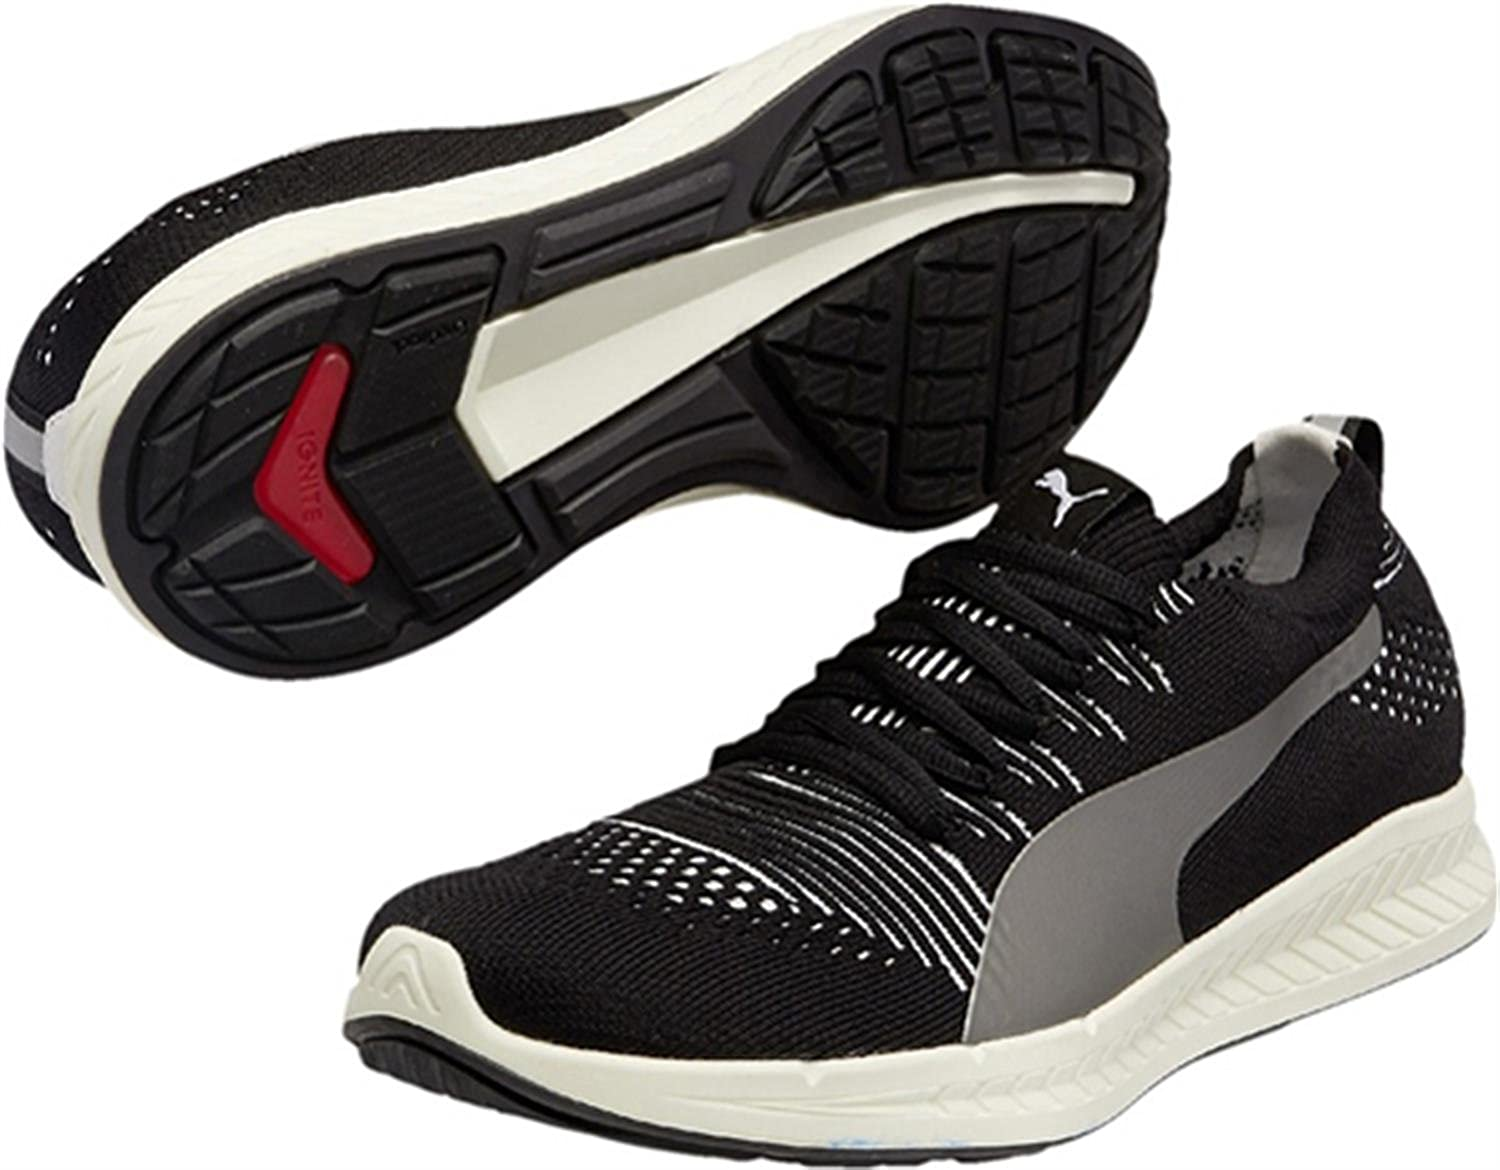 Puma Men s Ignite Proknit Black and White Running Shoes - 8 UK India (42  EU)  Buy Online at Low Prices in India - Amazon.in f342cdcea